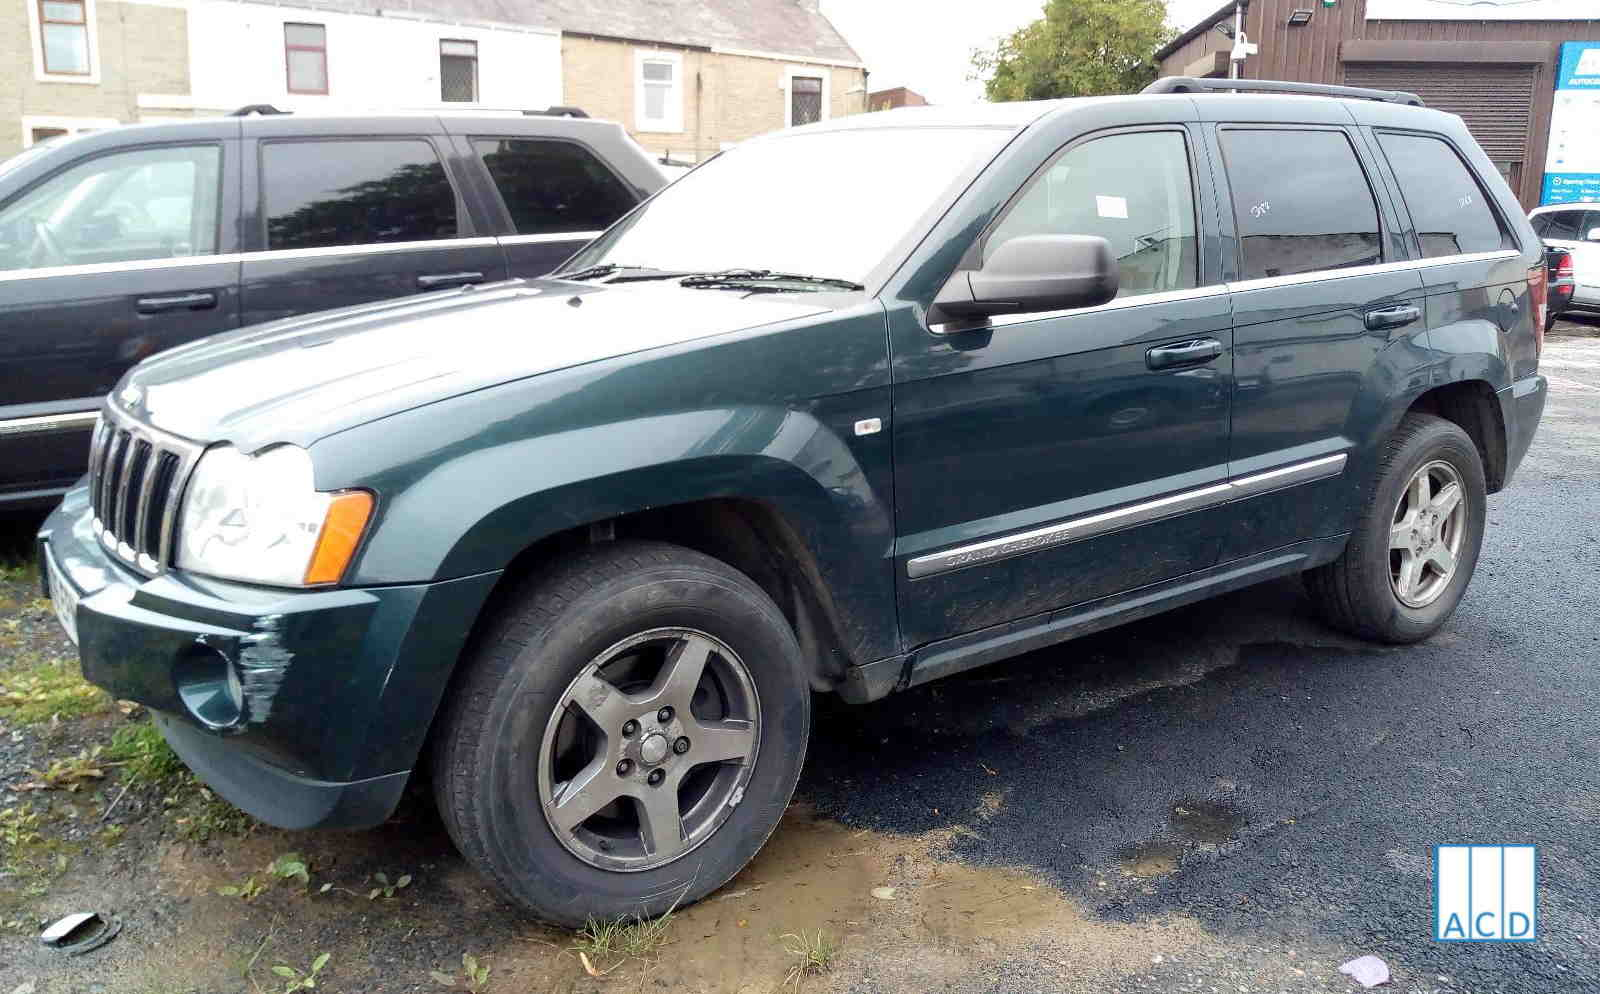 2005 Grand Cherokee used parts for sale.